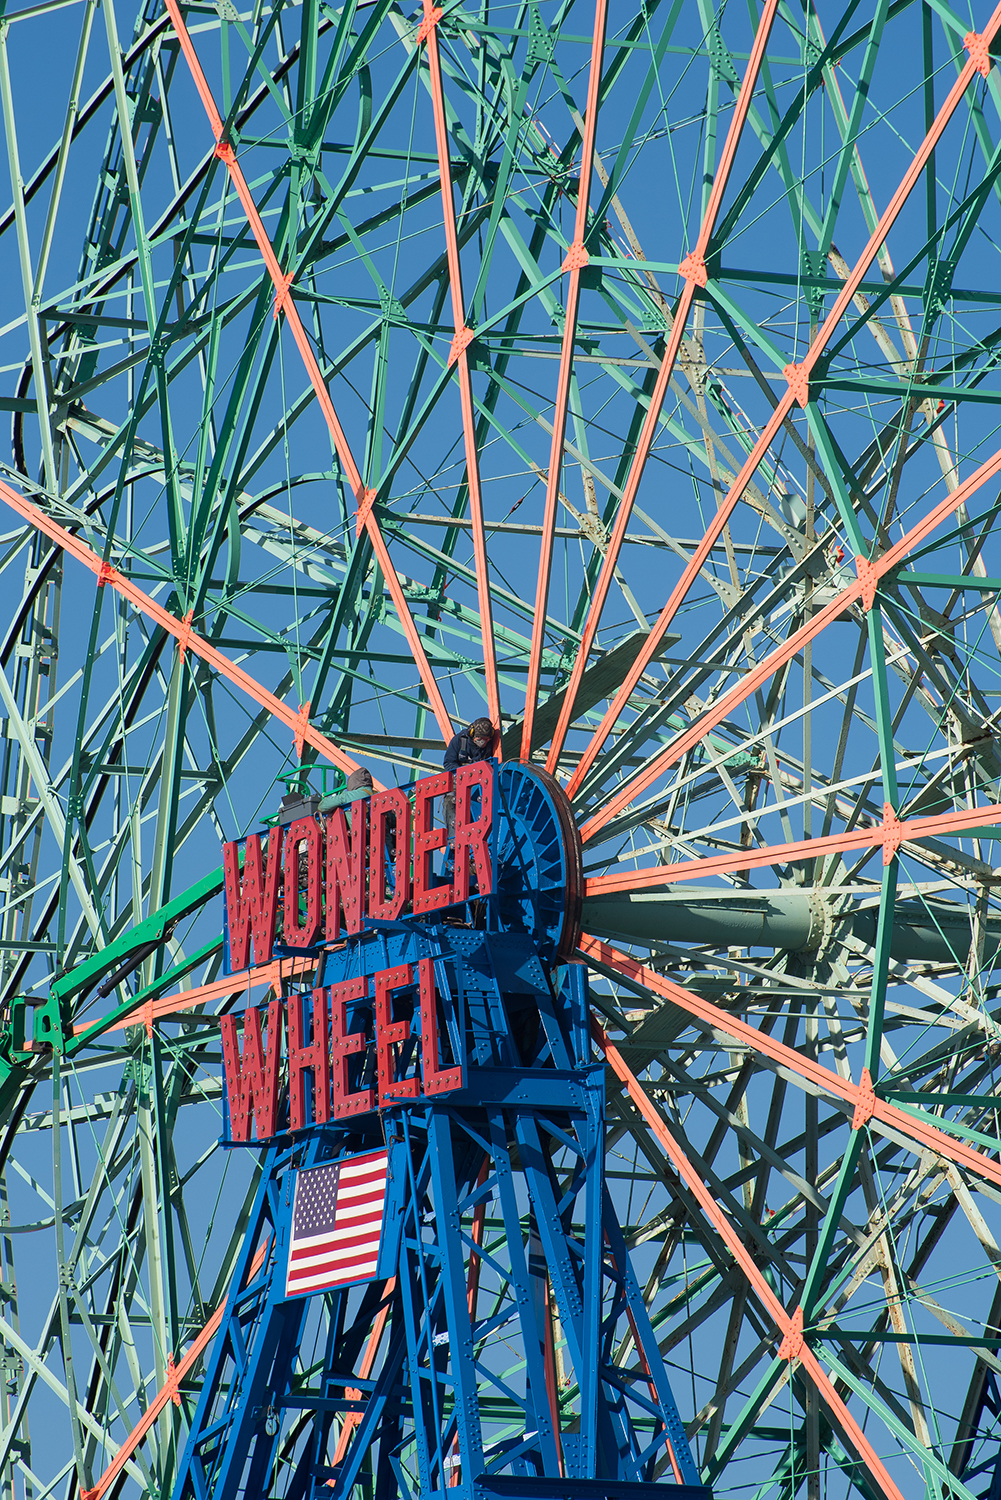 The Wonder Wheel can undergo its necessary maintenance now that the Luna Park is closed for the season.